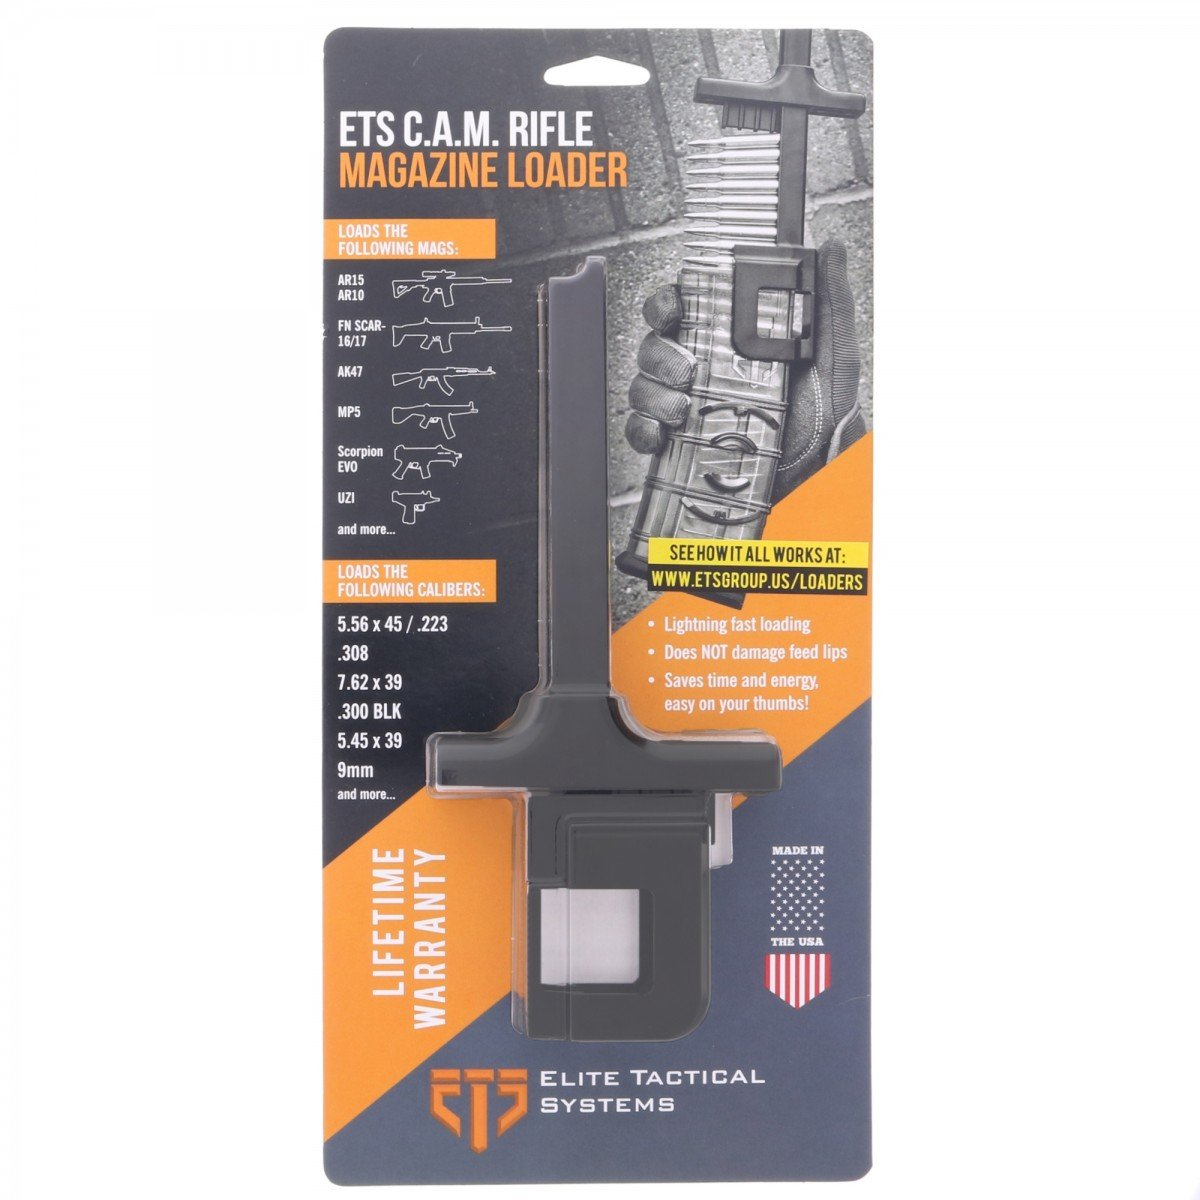 Magazine Loader .380 ACP ETSCAM-380 Elite Tactical Systems C.A.M ETS